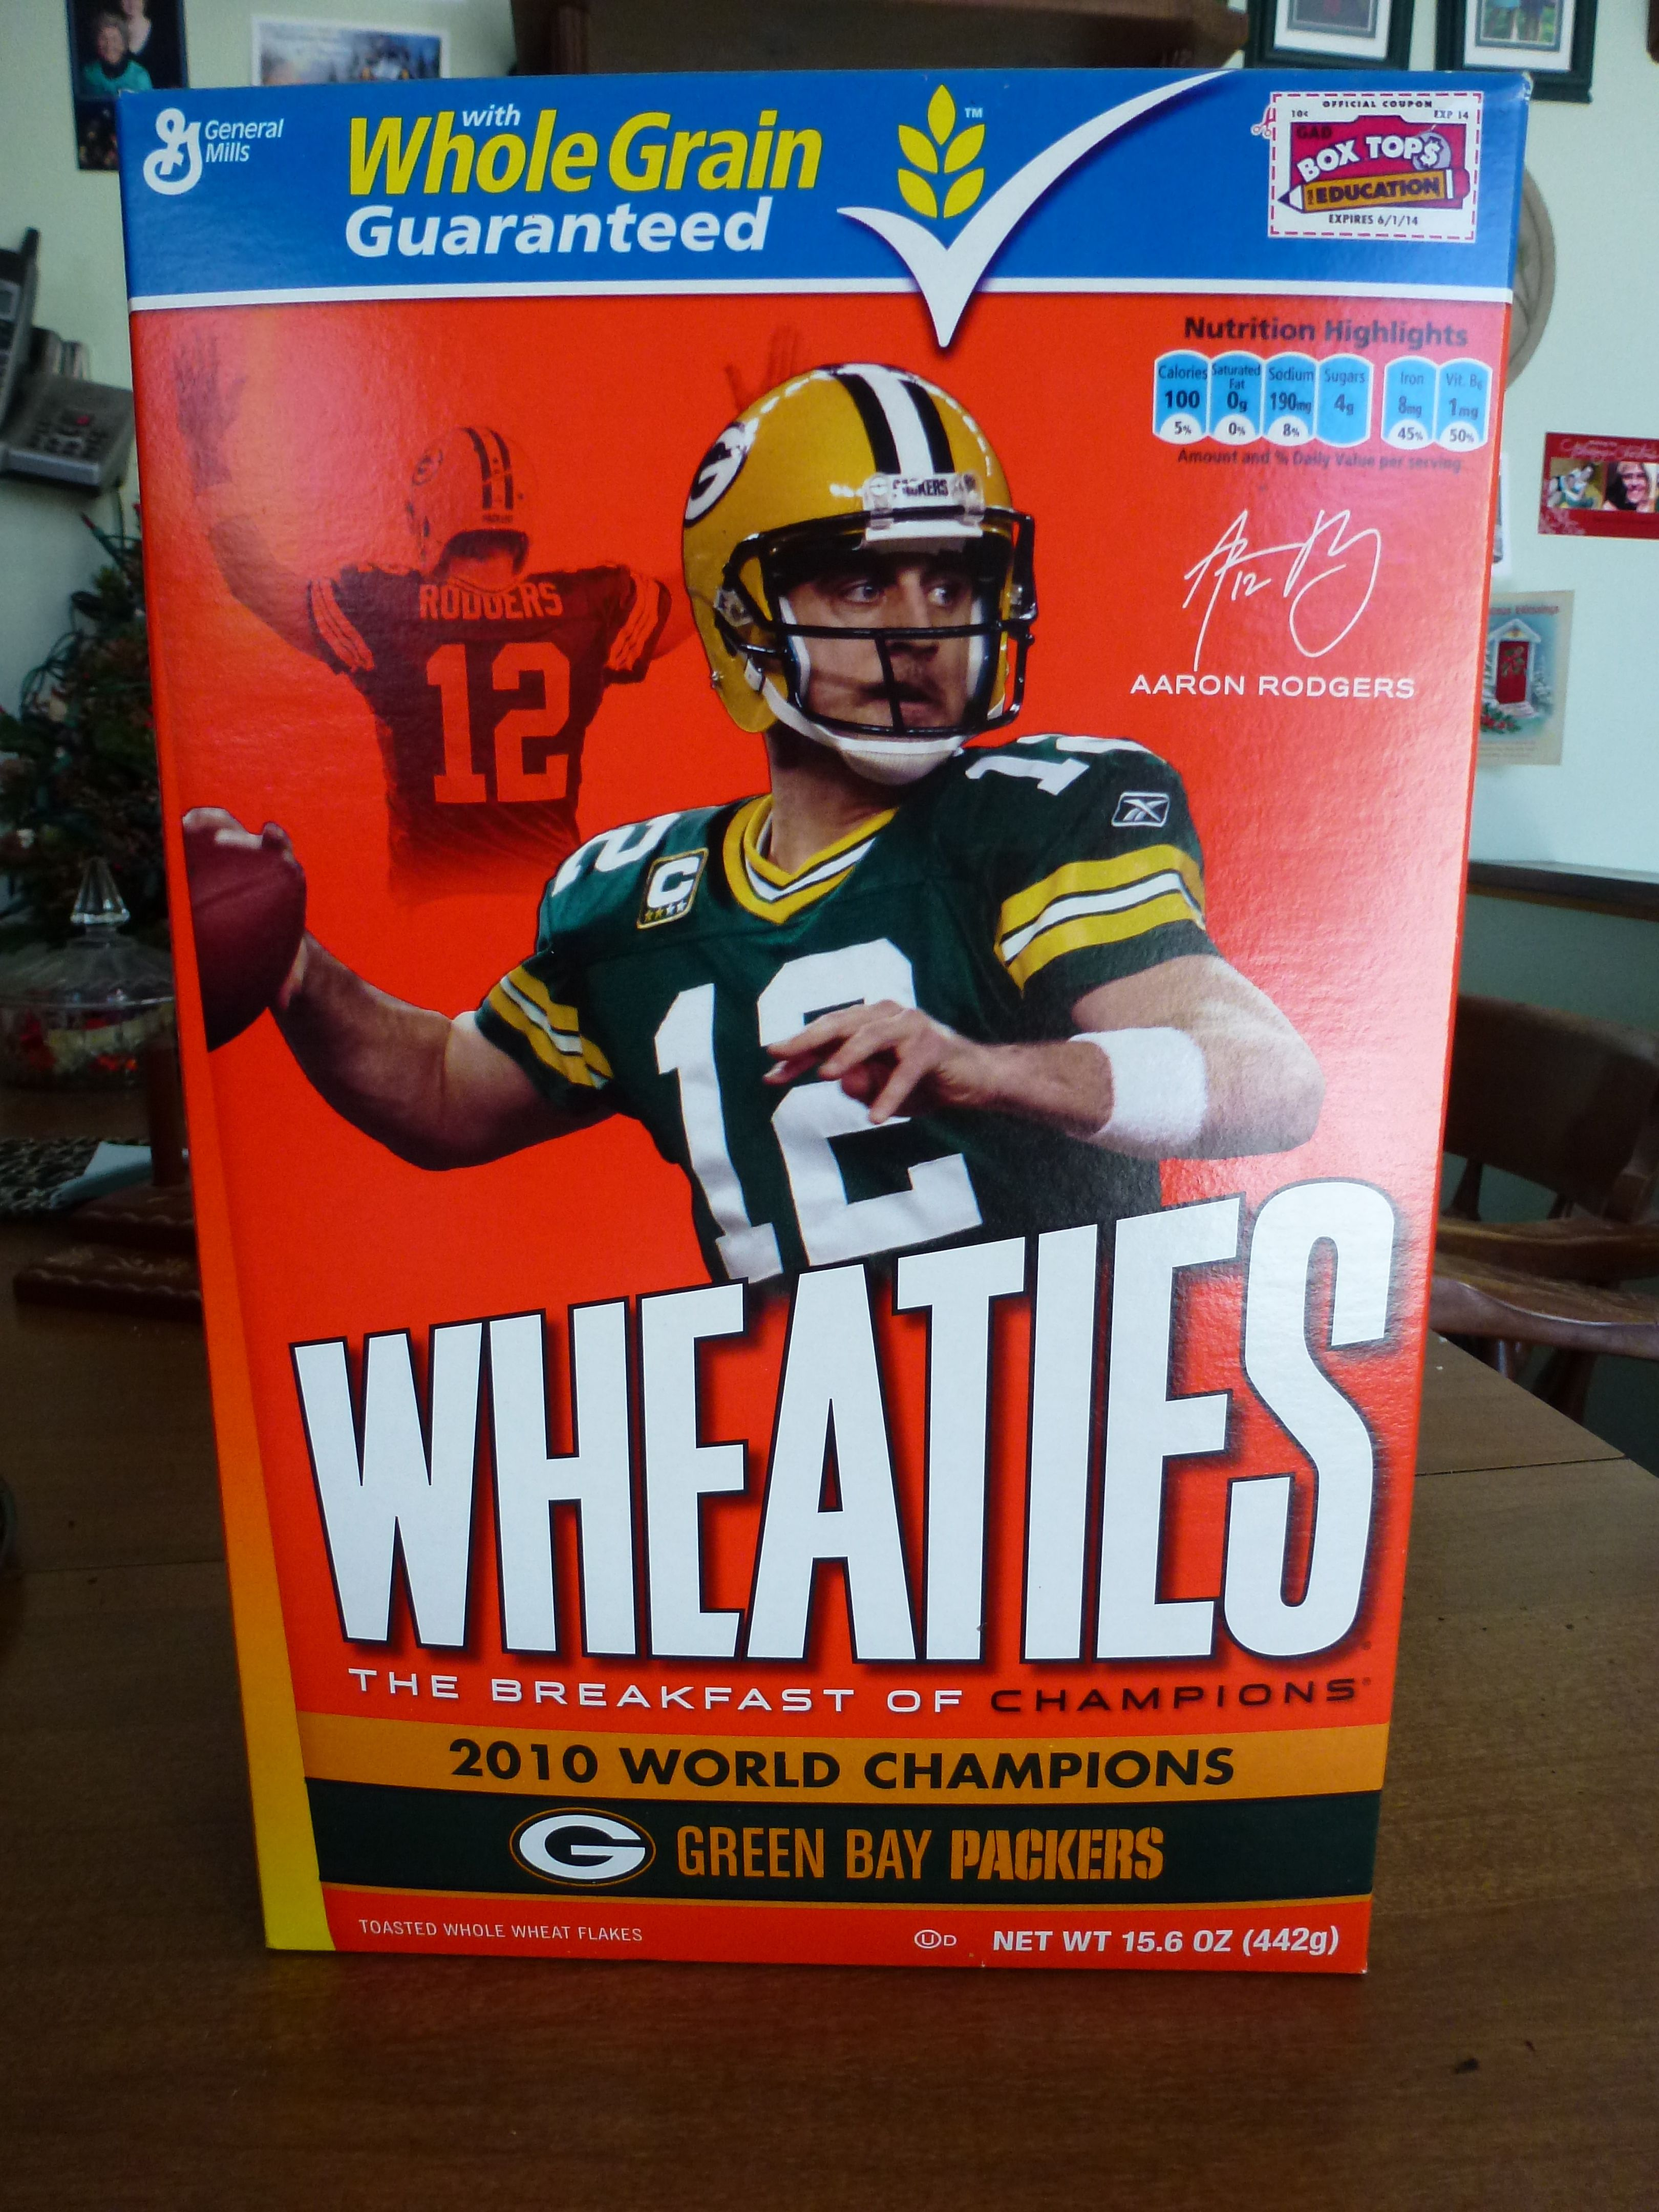 Aaron Rodgers On The Wheaties Cereal Box Green Bay Packers Aaron Rodgers Green Bay